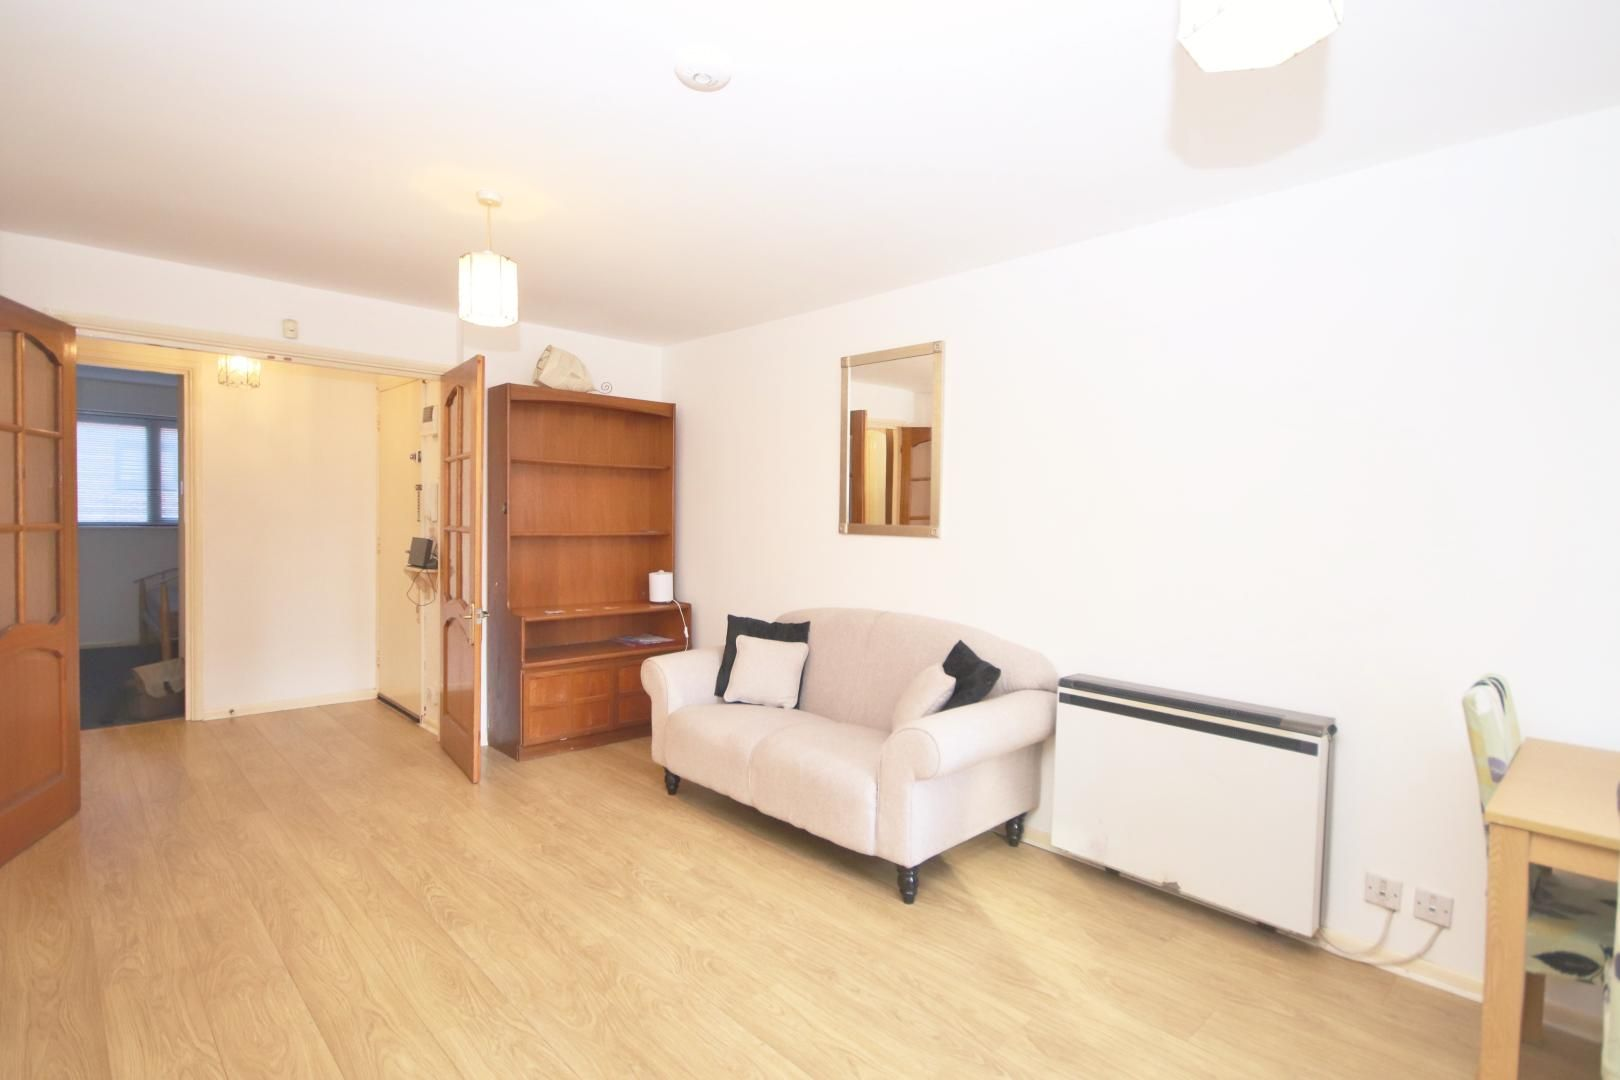 2 bed flat for sale in Tyndale Court, E14